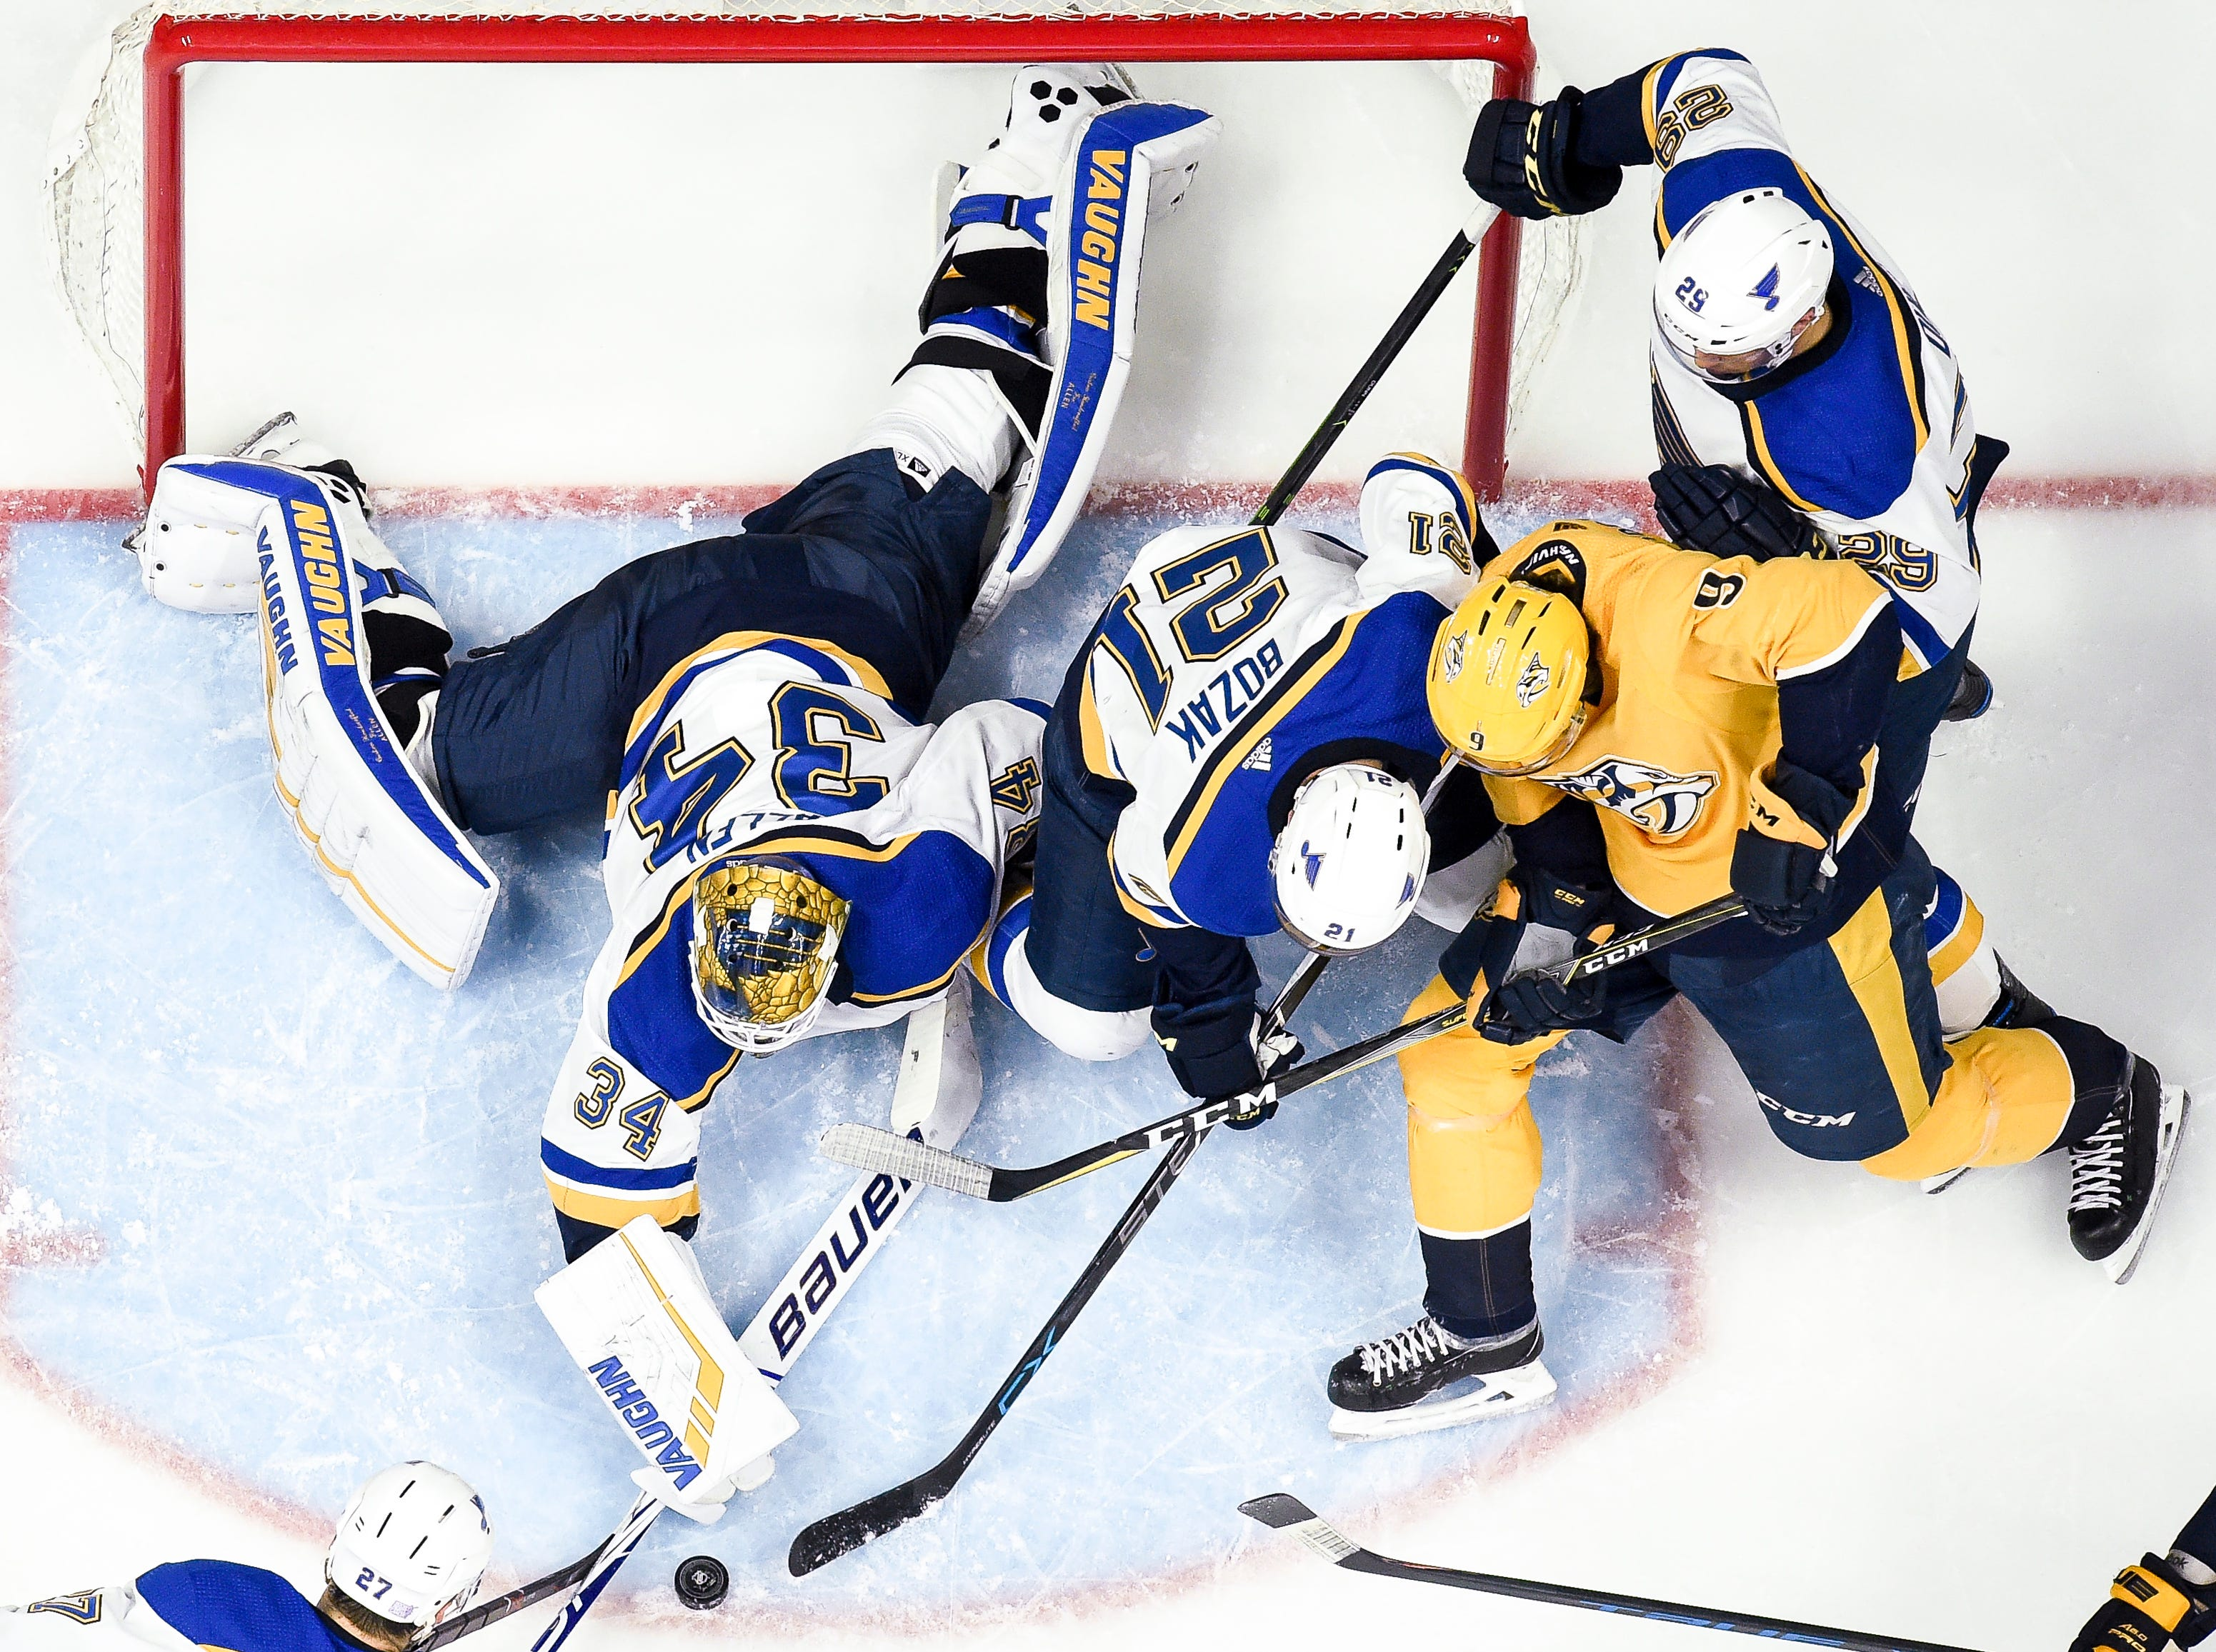 St. Louis Blues goaltender Jake Allen (34), center Tyler Bozak (21), and defenseman Vince Dunn (29), defend against Nashville Predators left wing Filip Forsberg (9) during the second period at Bridgestone Arena in Nashville, Tenn., Wednesday, Nov. 21, 2018.